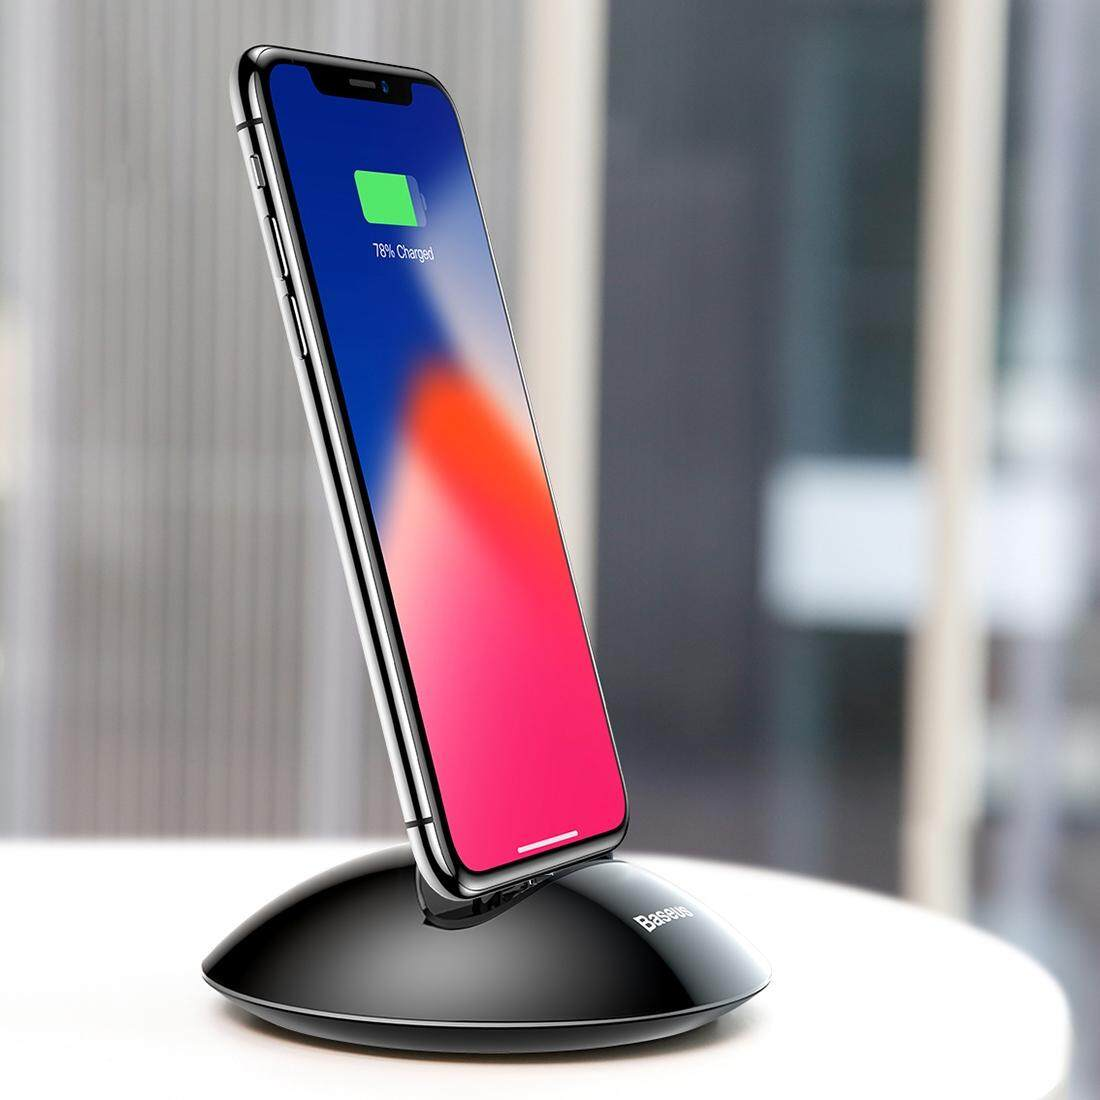 Baseus Northern Hemisphere Series Lightning Desktop Qi Standard Charger Station For Iphone X Iphone 8 And 8 Plus Iphone 7 And 7 Plus Iphone 6 And 6S And 6 Plus And 6S Plus Black Intl Deal